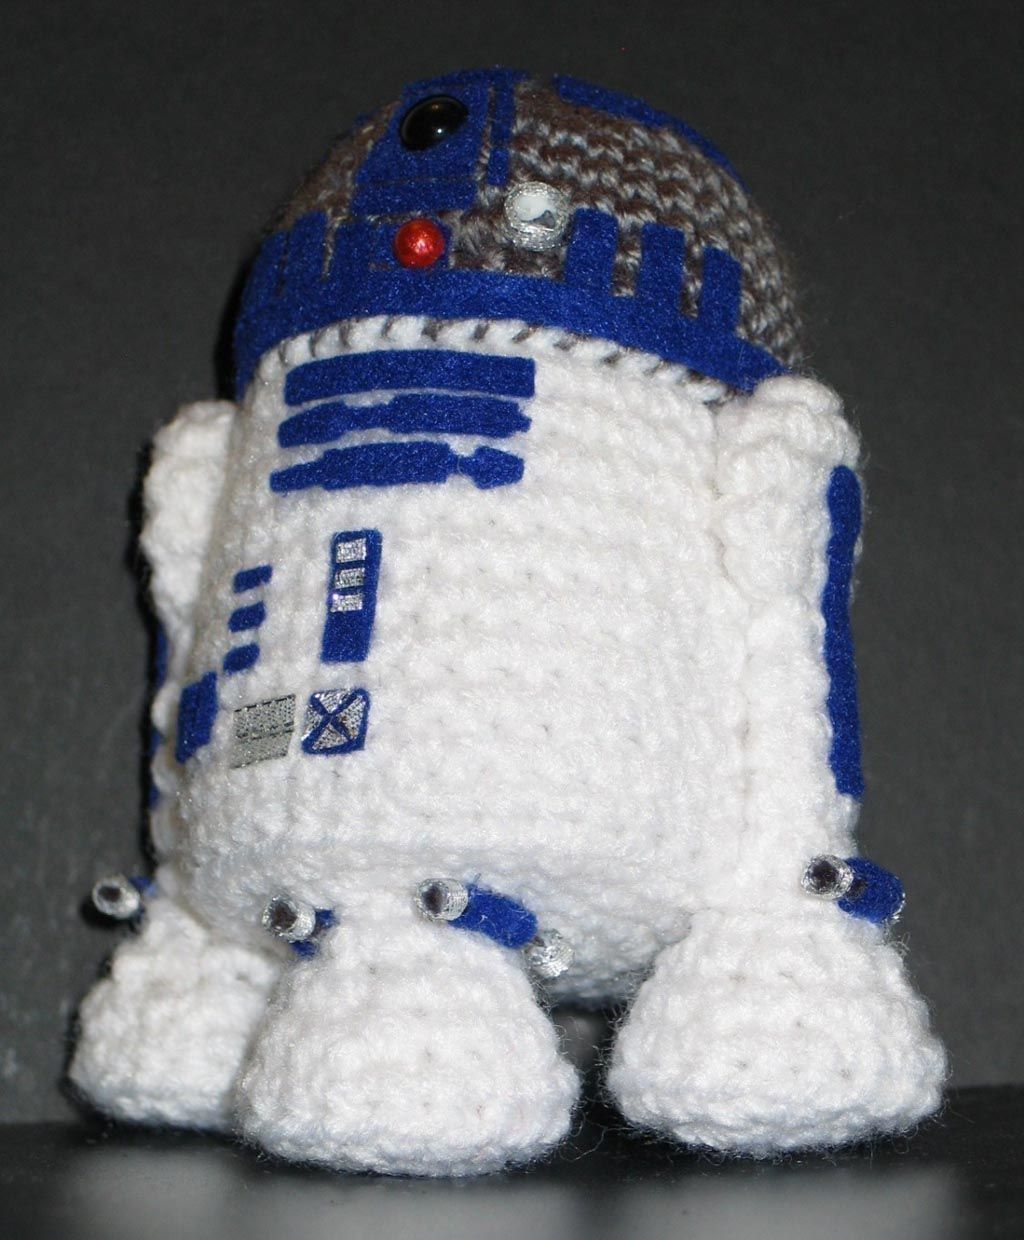 Make Your Own Star Wars R2 D2 Amigurumi May The Force Be With You